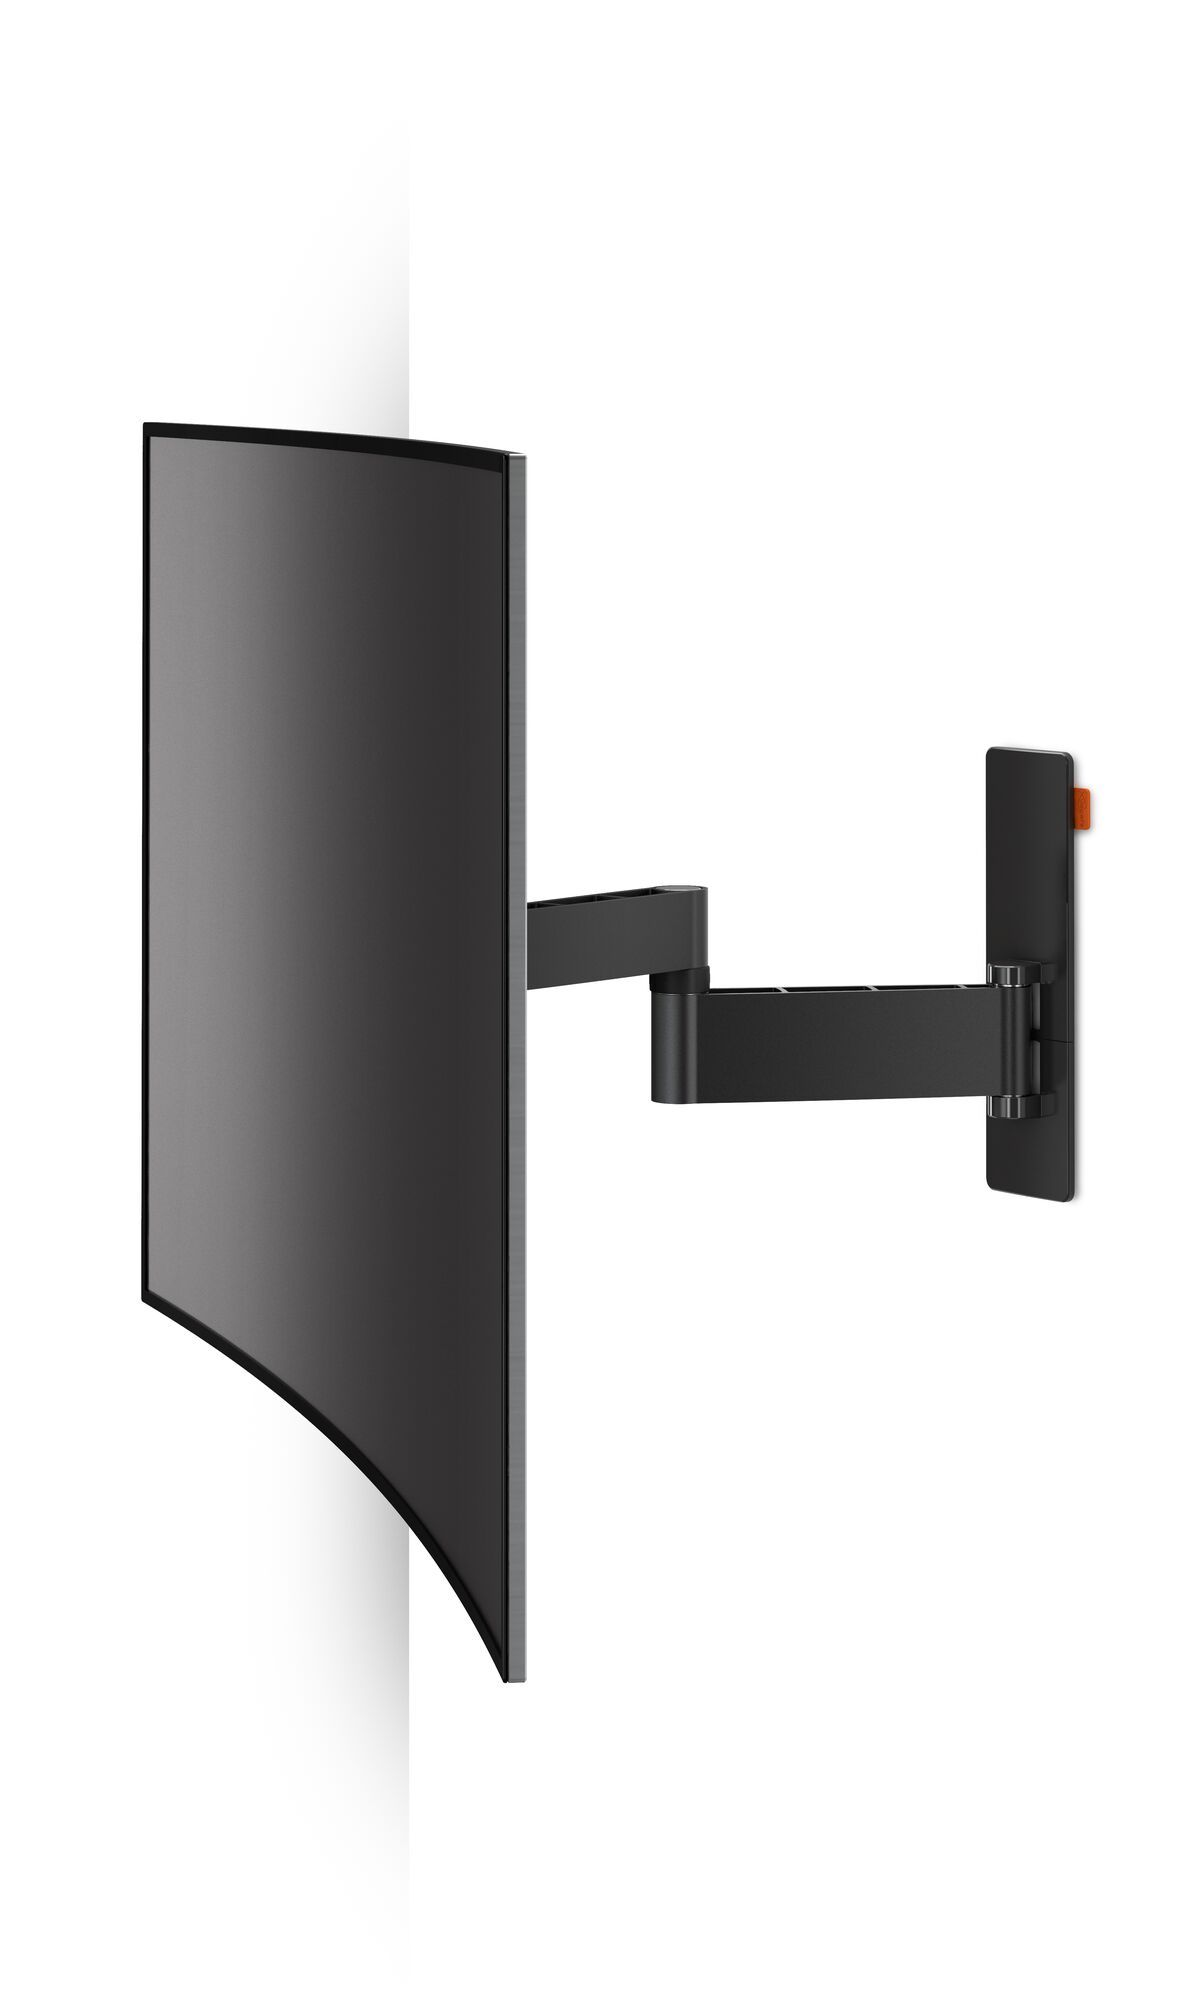 Vogel's WALL 2245 Full-Motion TV Wall Mount (black) - Velegnet til tv'er fra 32 til 55 tommer - Op til 180° - Vip op til 20° - Application